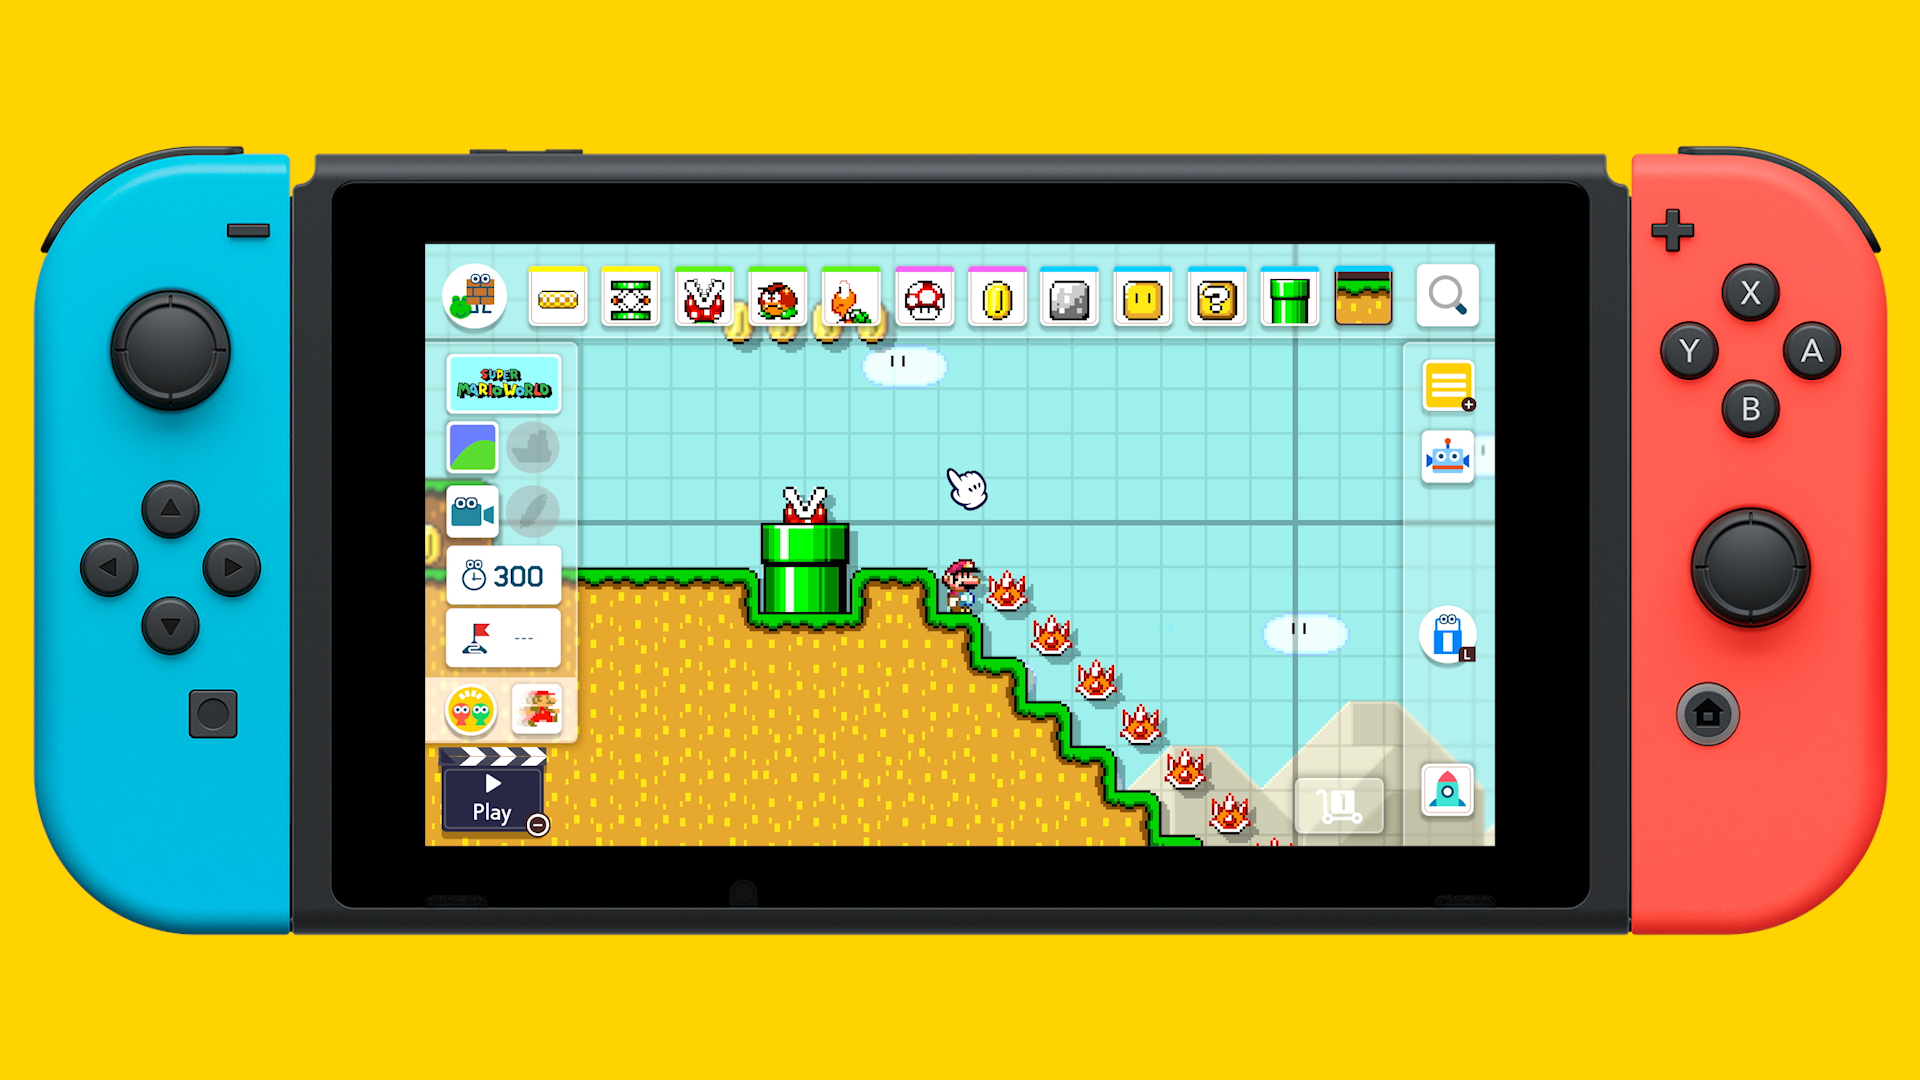 Japan: Nintendo Switch and Super Mario Maker 2 remain on top | My